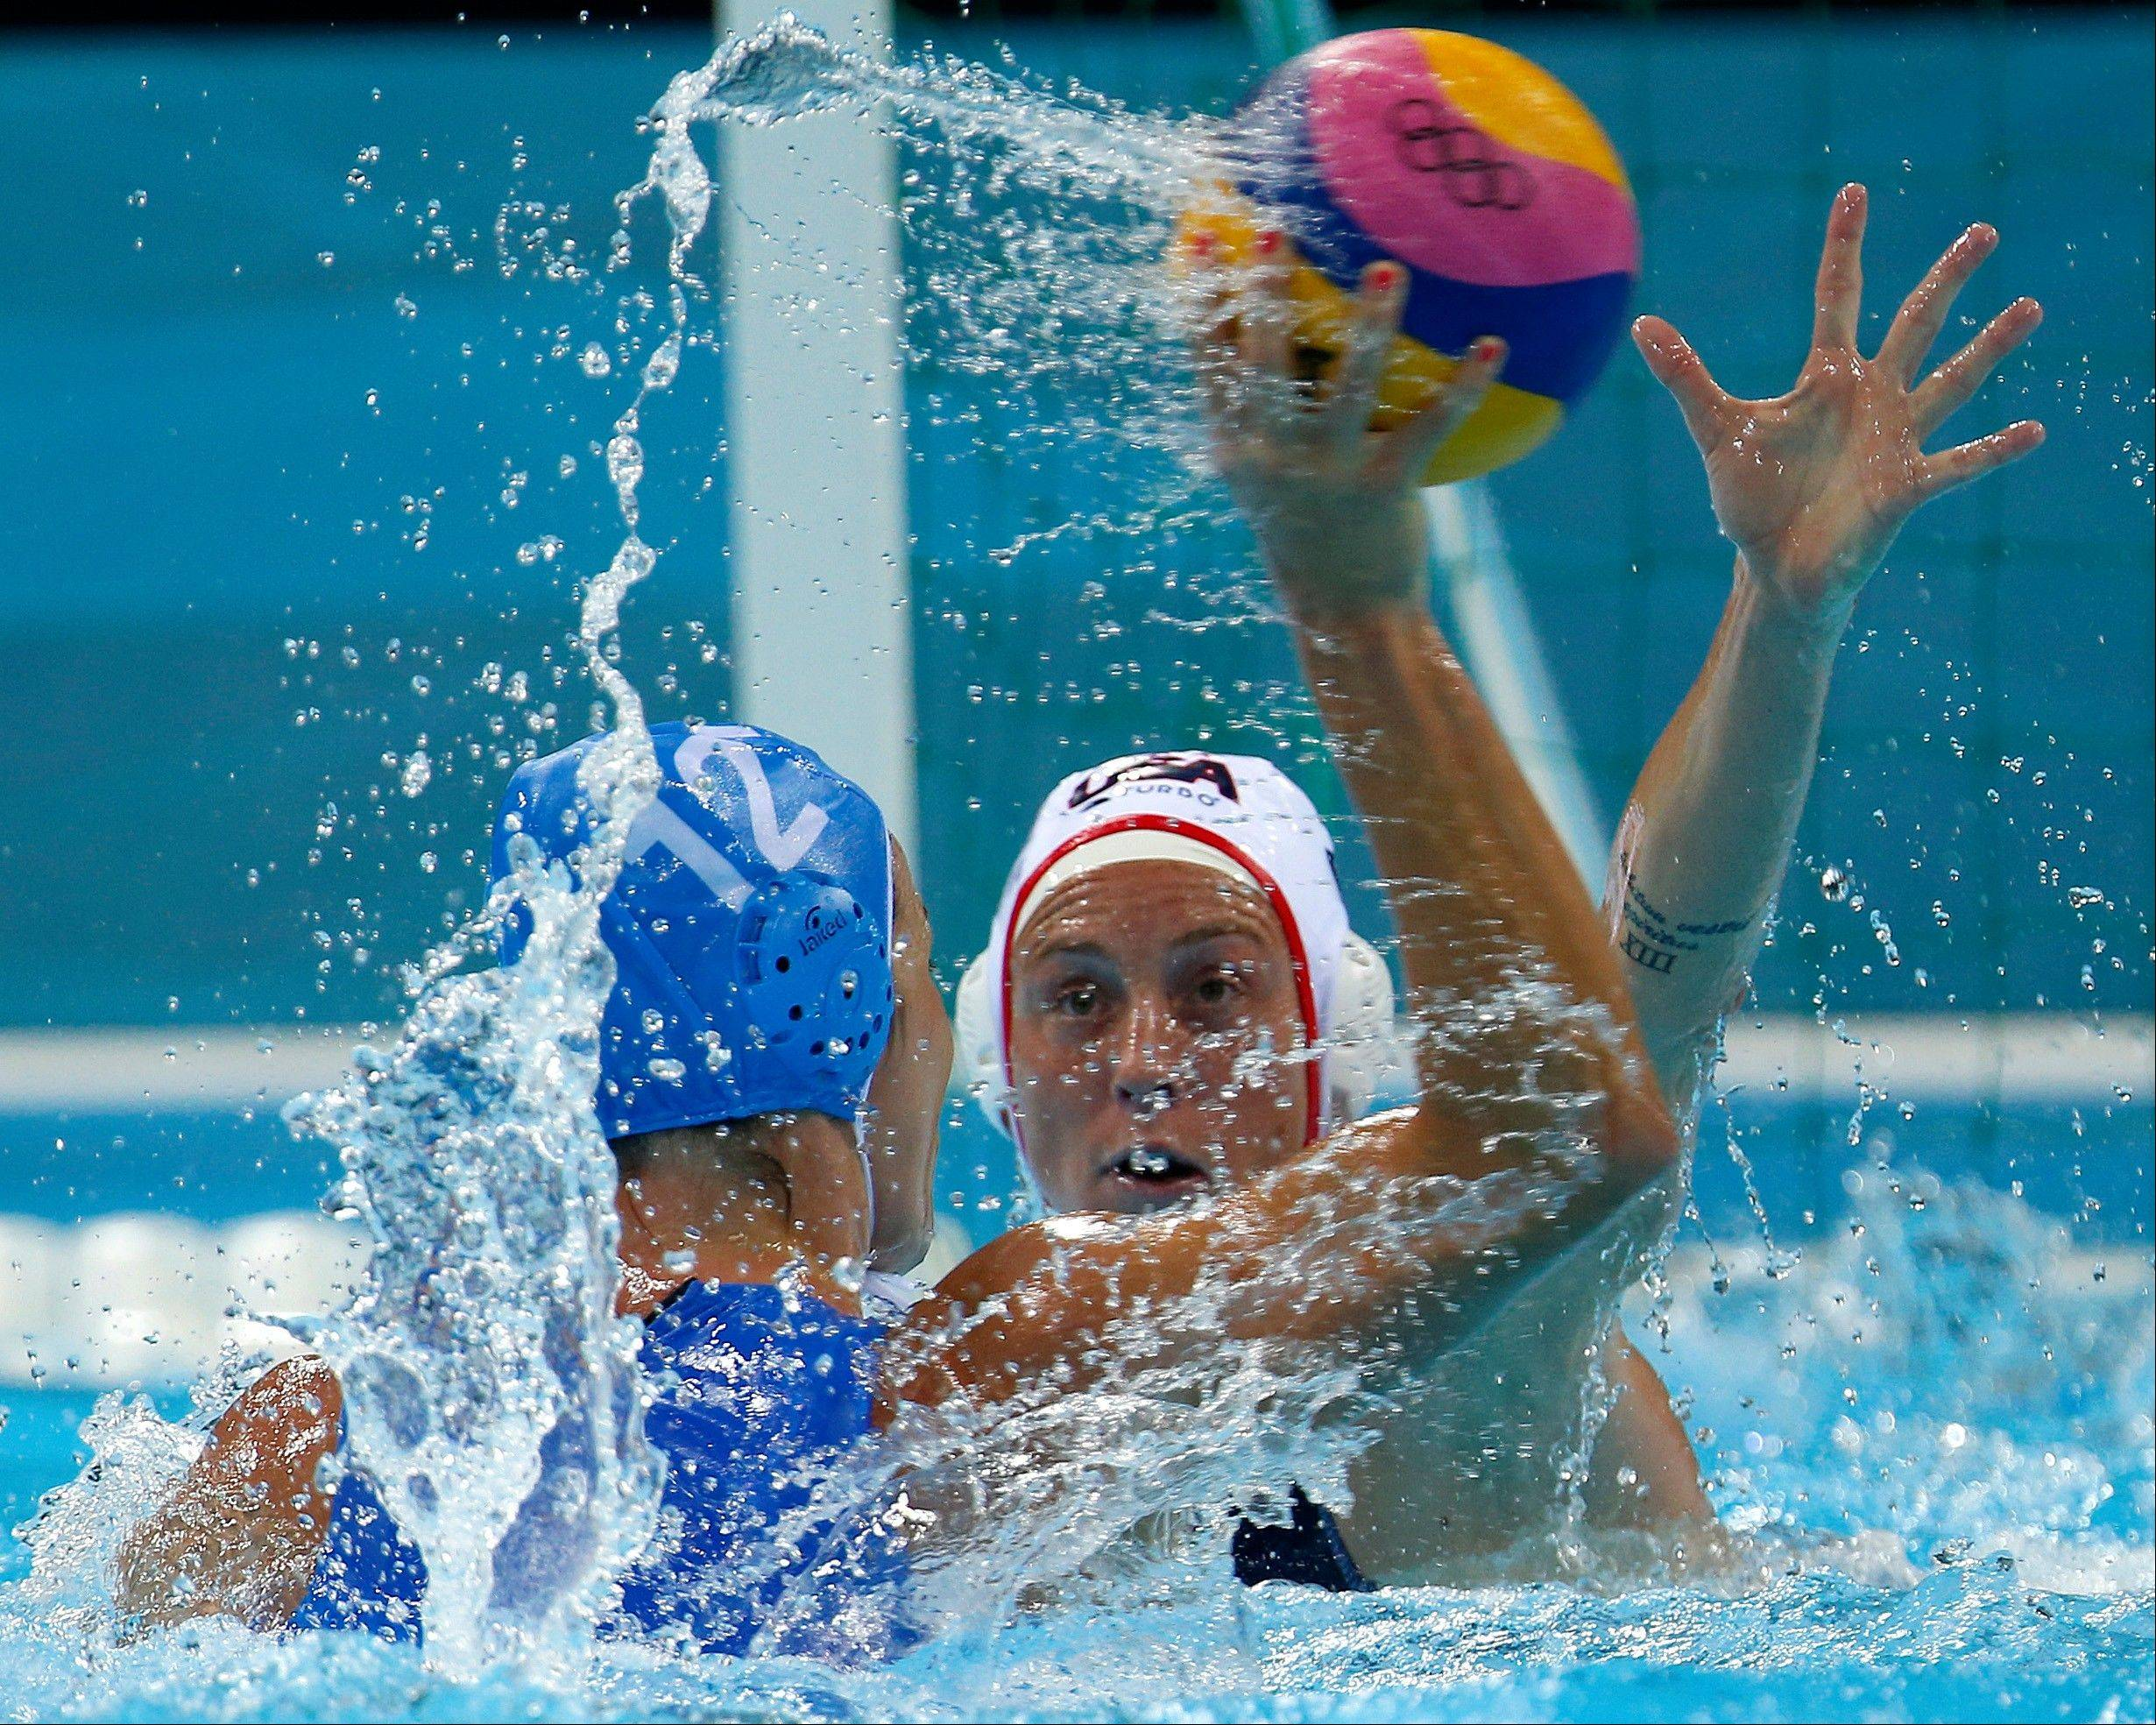 Lauren Wenger, right, of the United States defends against Teresa Frassinetti of Italy during their women's water polo quarterfinal match at the 2012 Summer Olympics, Sunday, Aug. 5, 2012, in London.